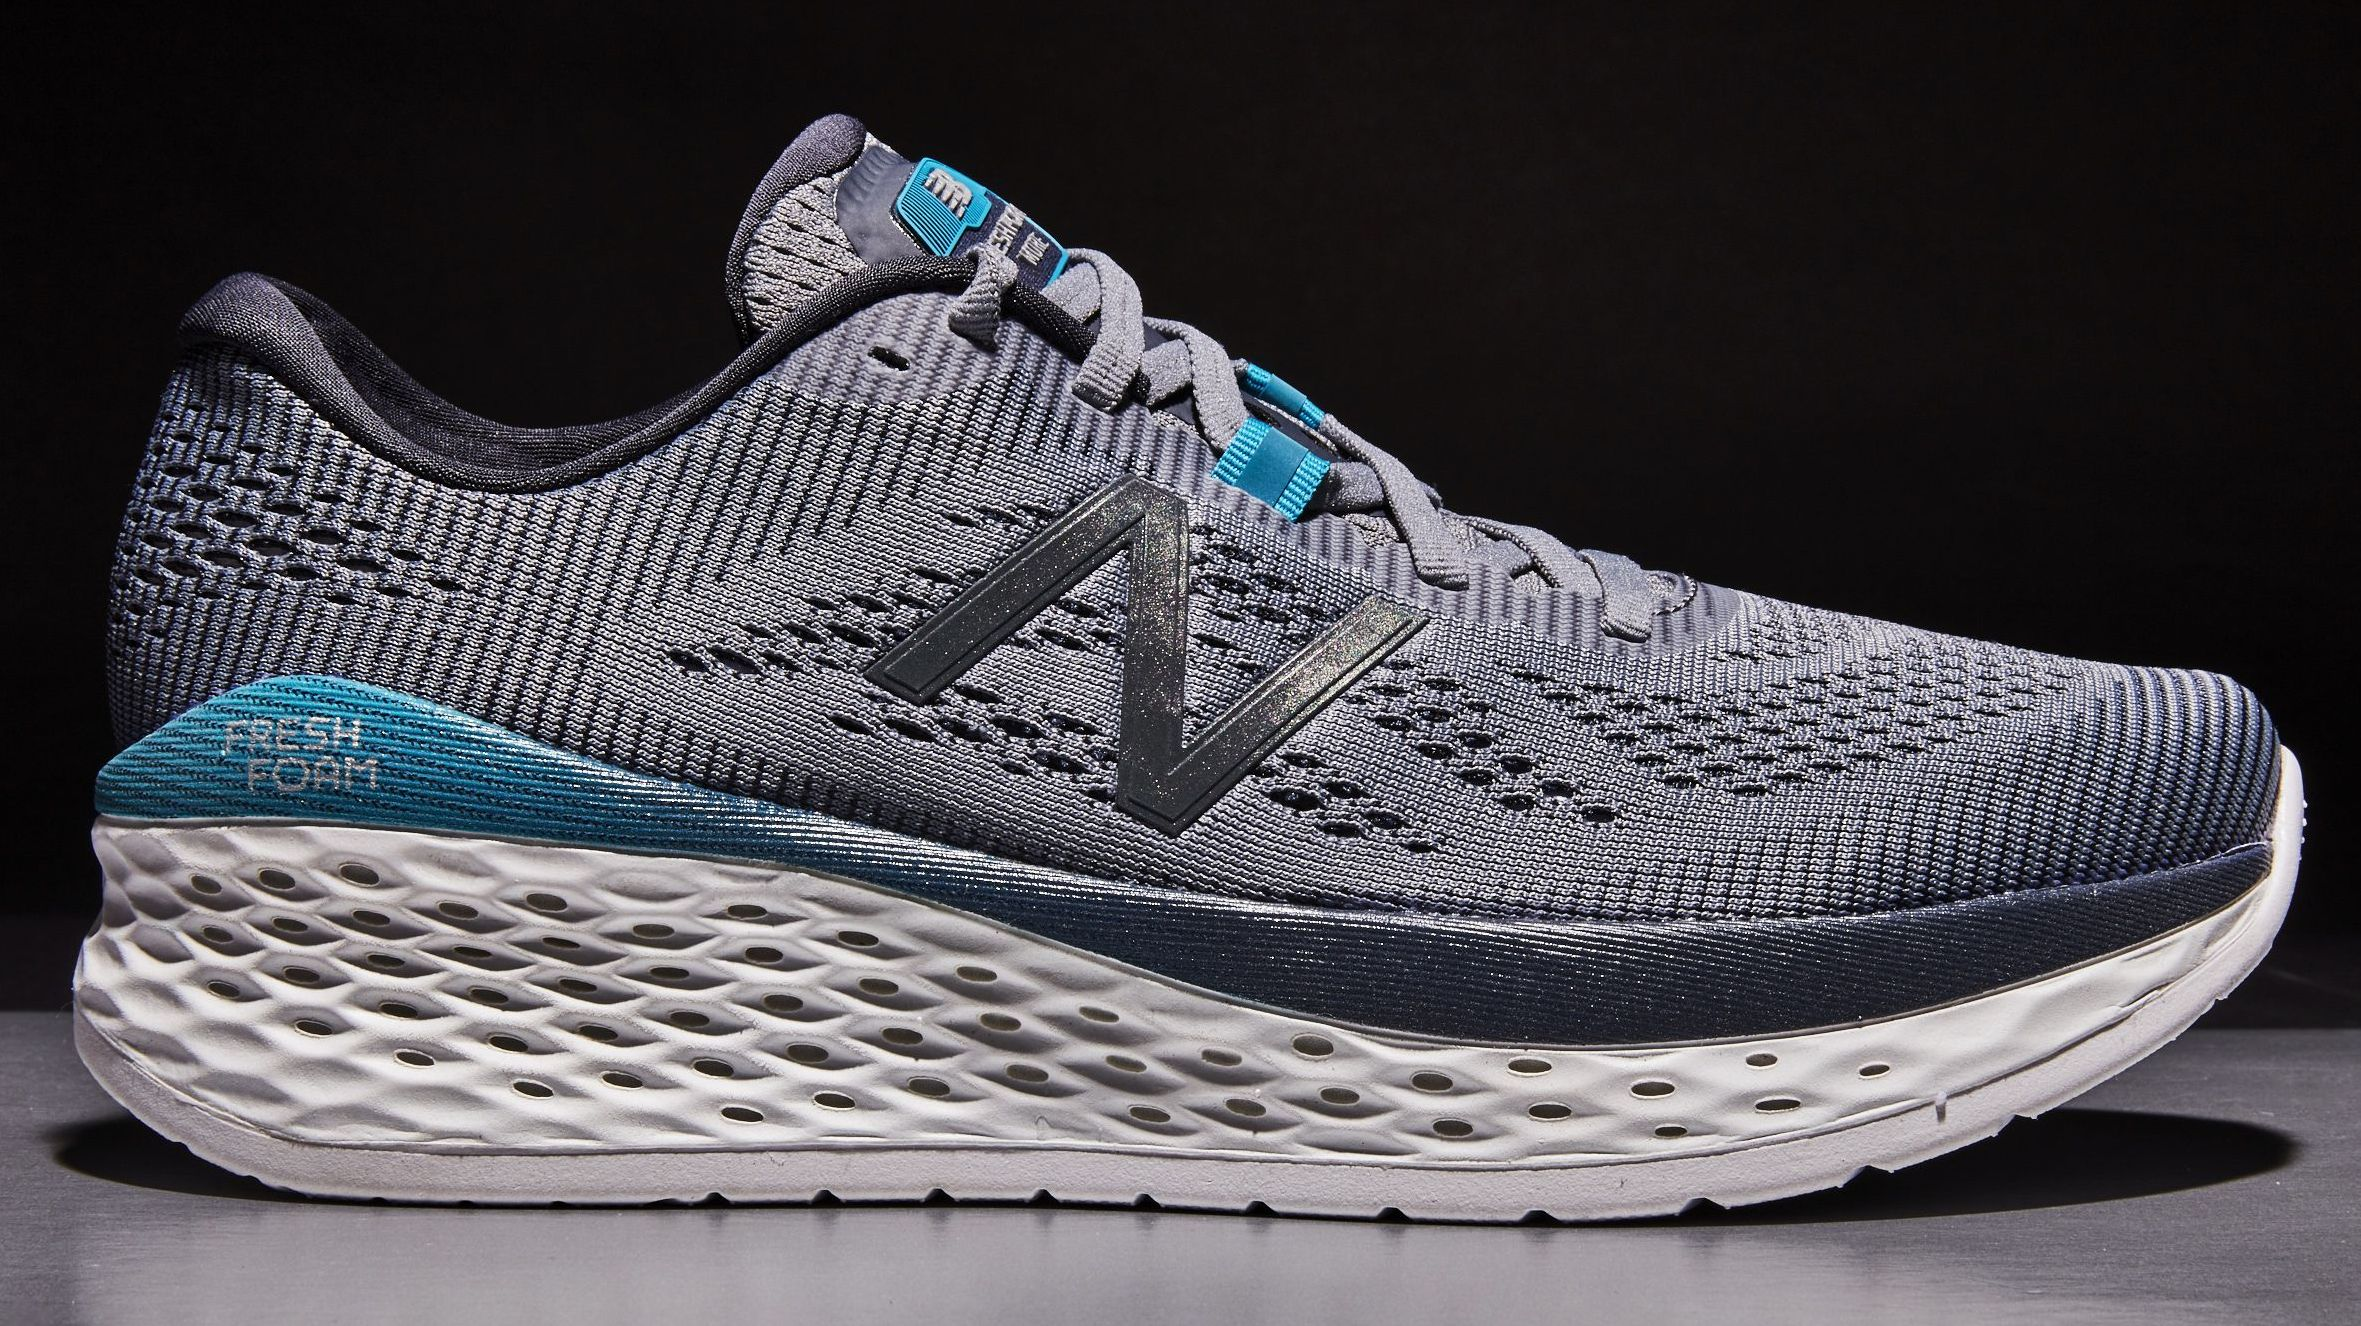 2cd8619f0bef6 New Balance Fresh Foam More Review 2019 | Cushioned Running Shoes